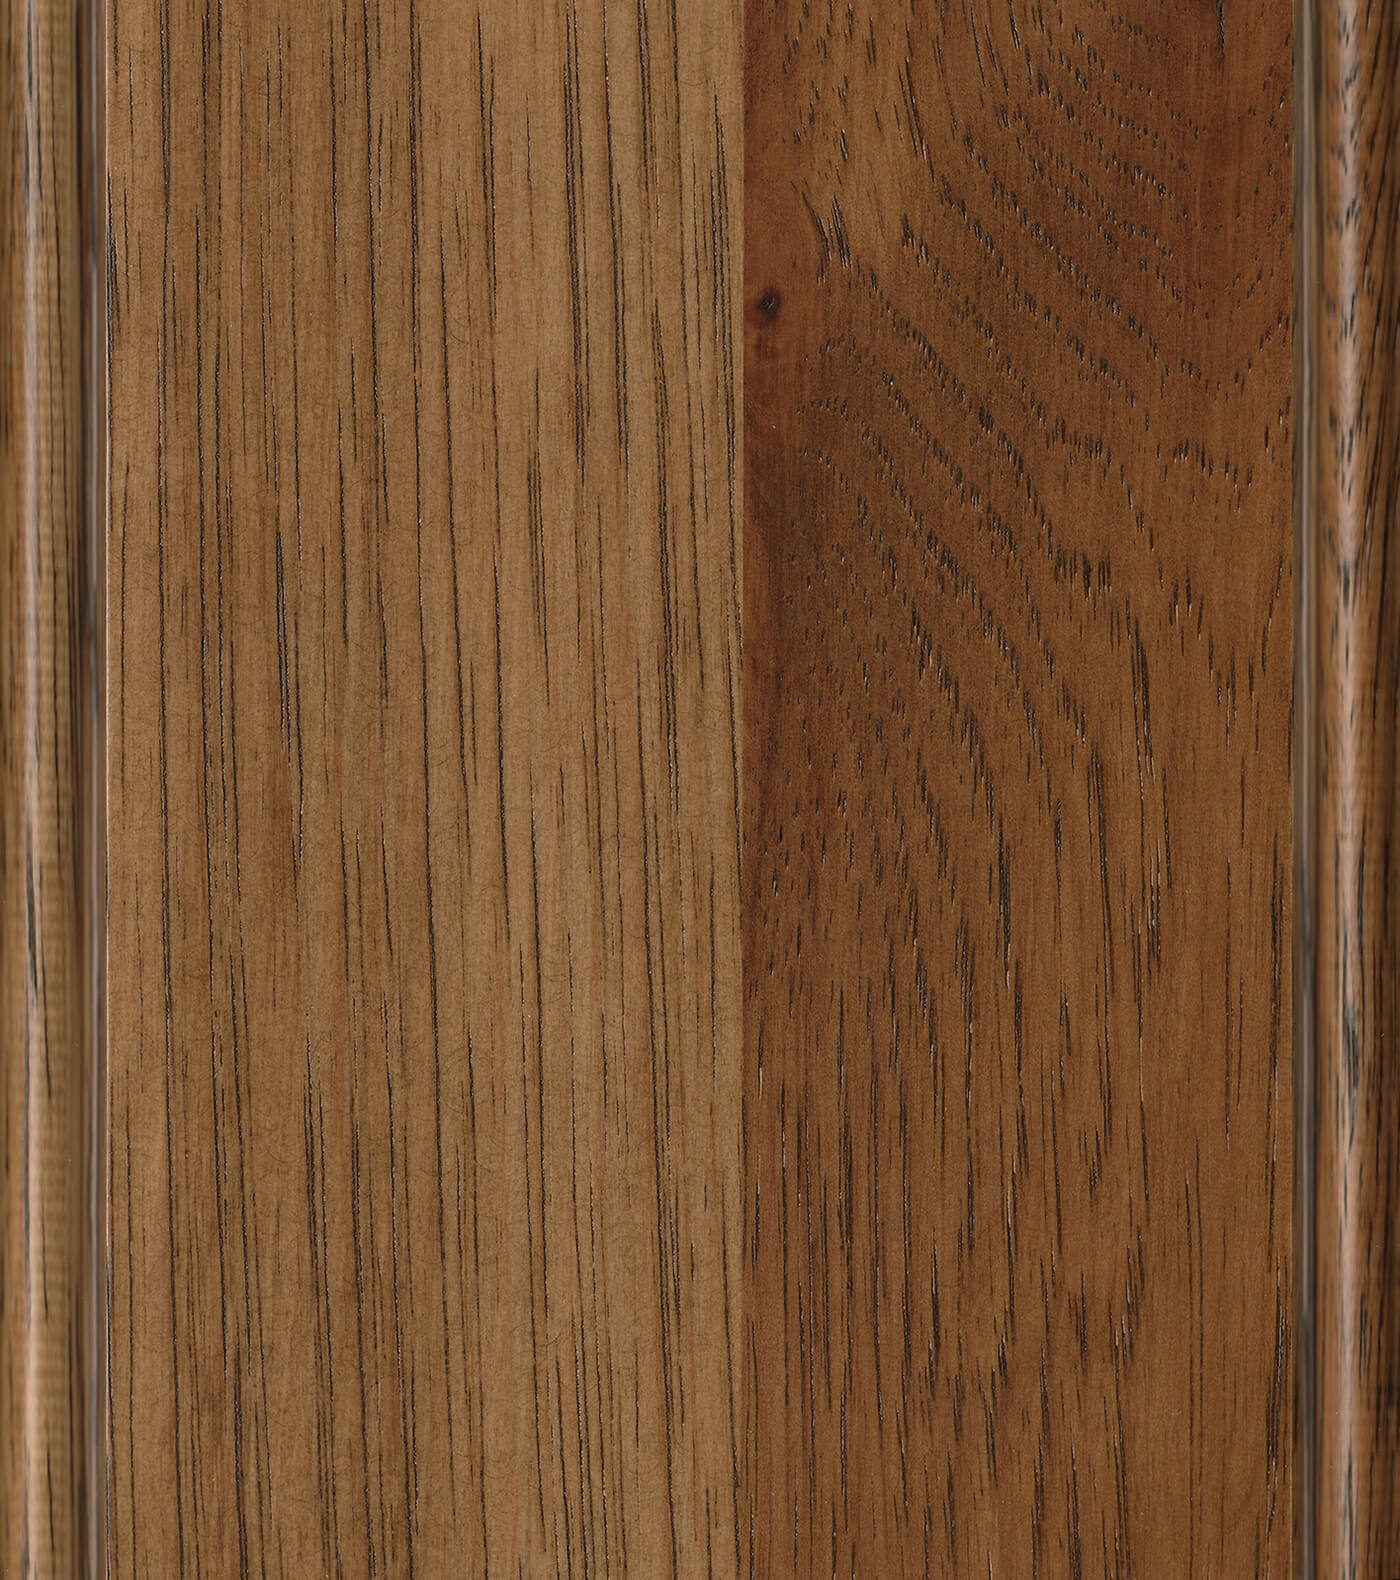 Cappuccino Stain on Hickory or Rustic Hickory